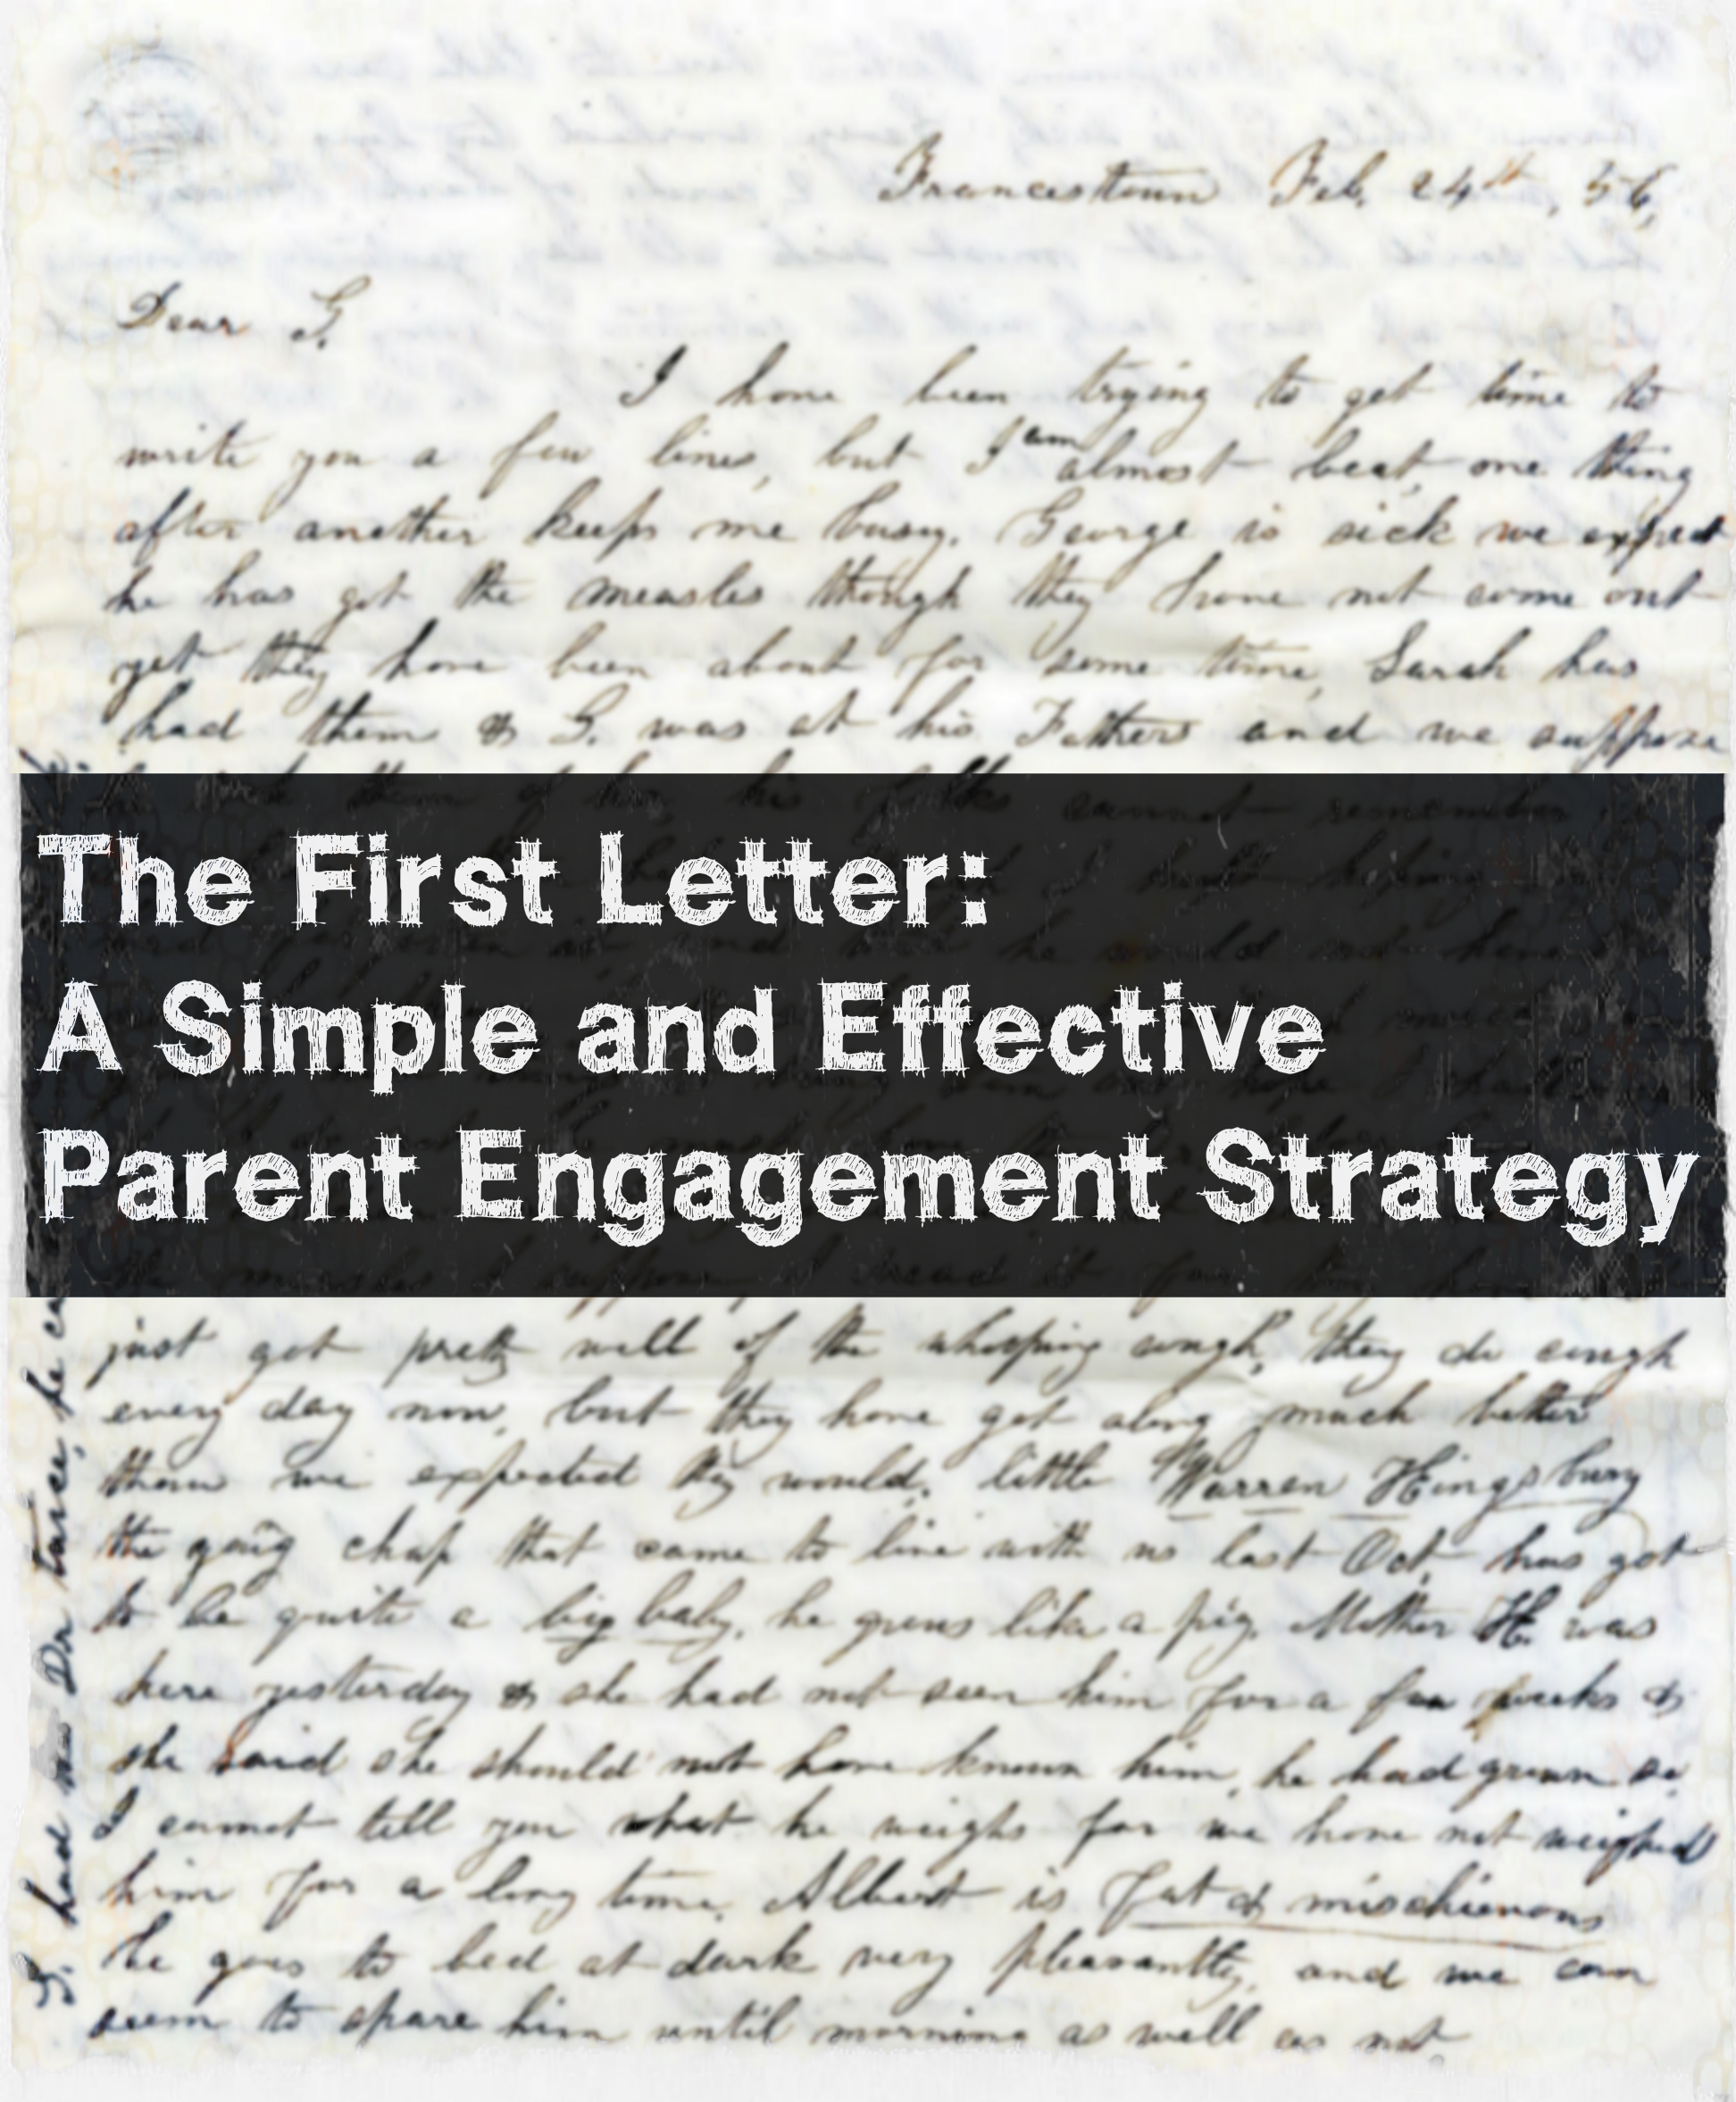 The First Letter: A Simple and Effective Parent Engagement